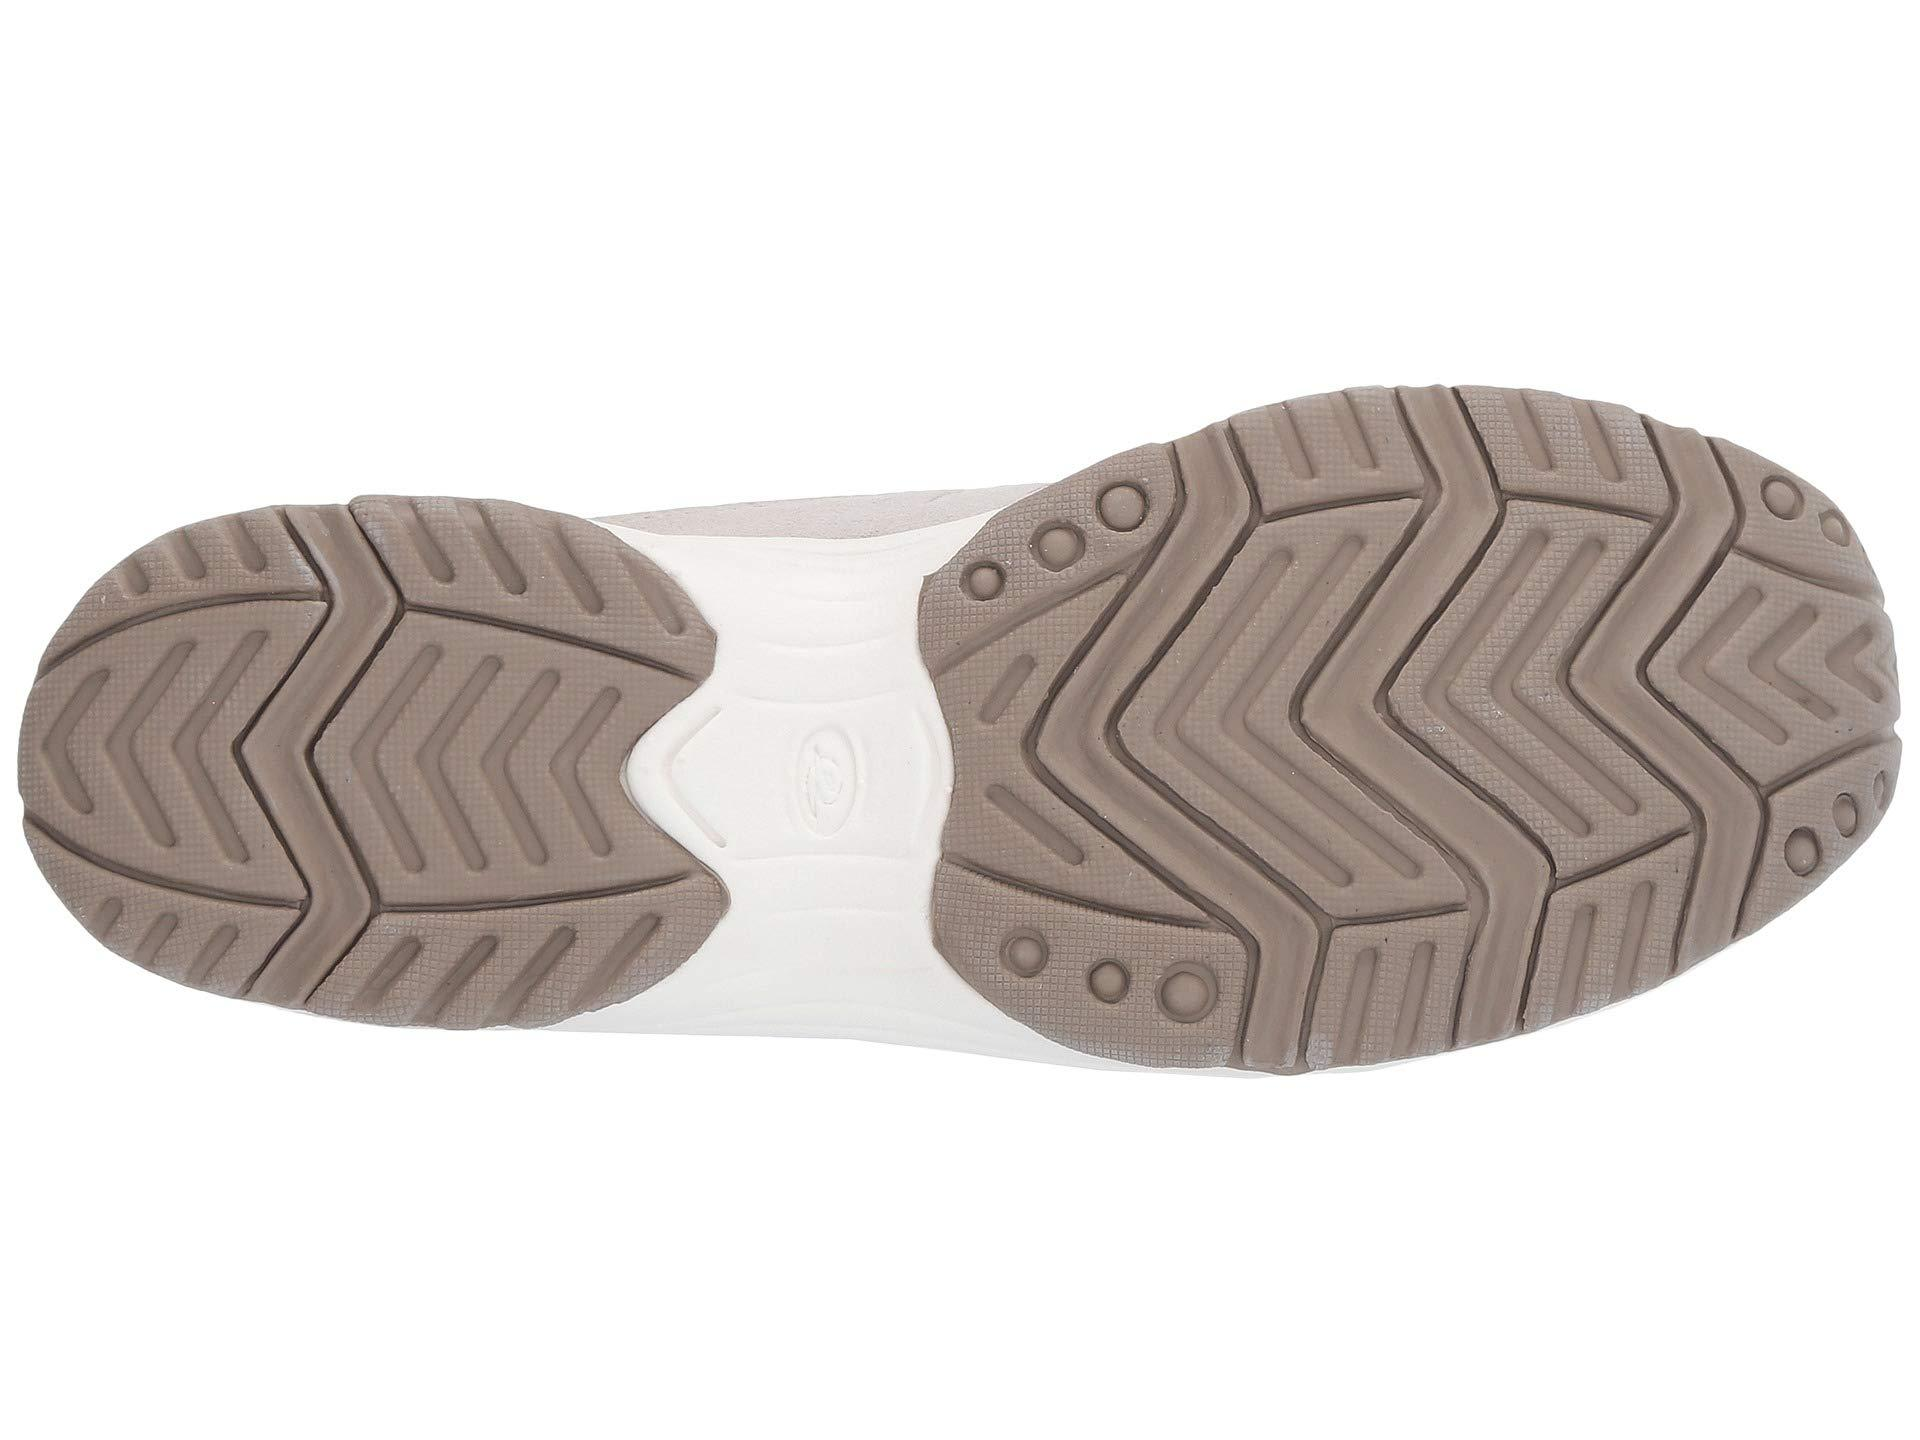 978c6d086b6a4 Lyst - Easy Spirit Traveltime 372 (grey) Women's Shoes in Gray